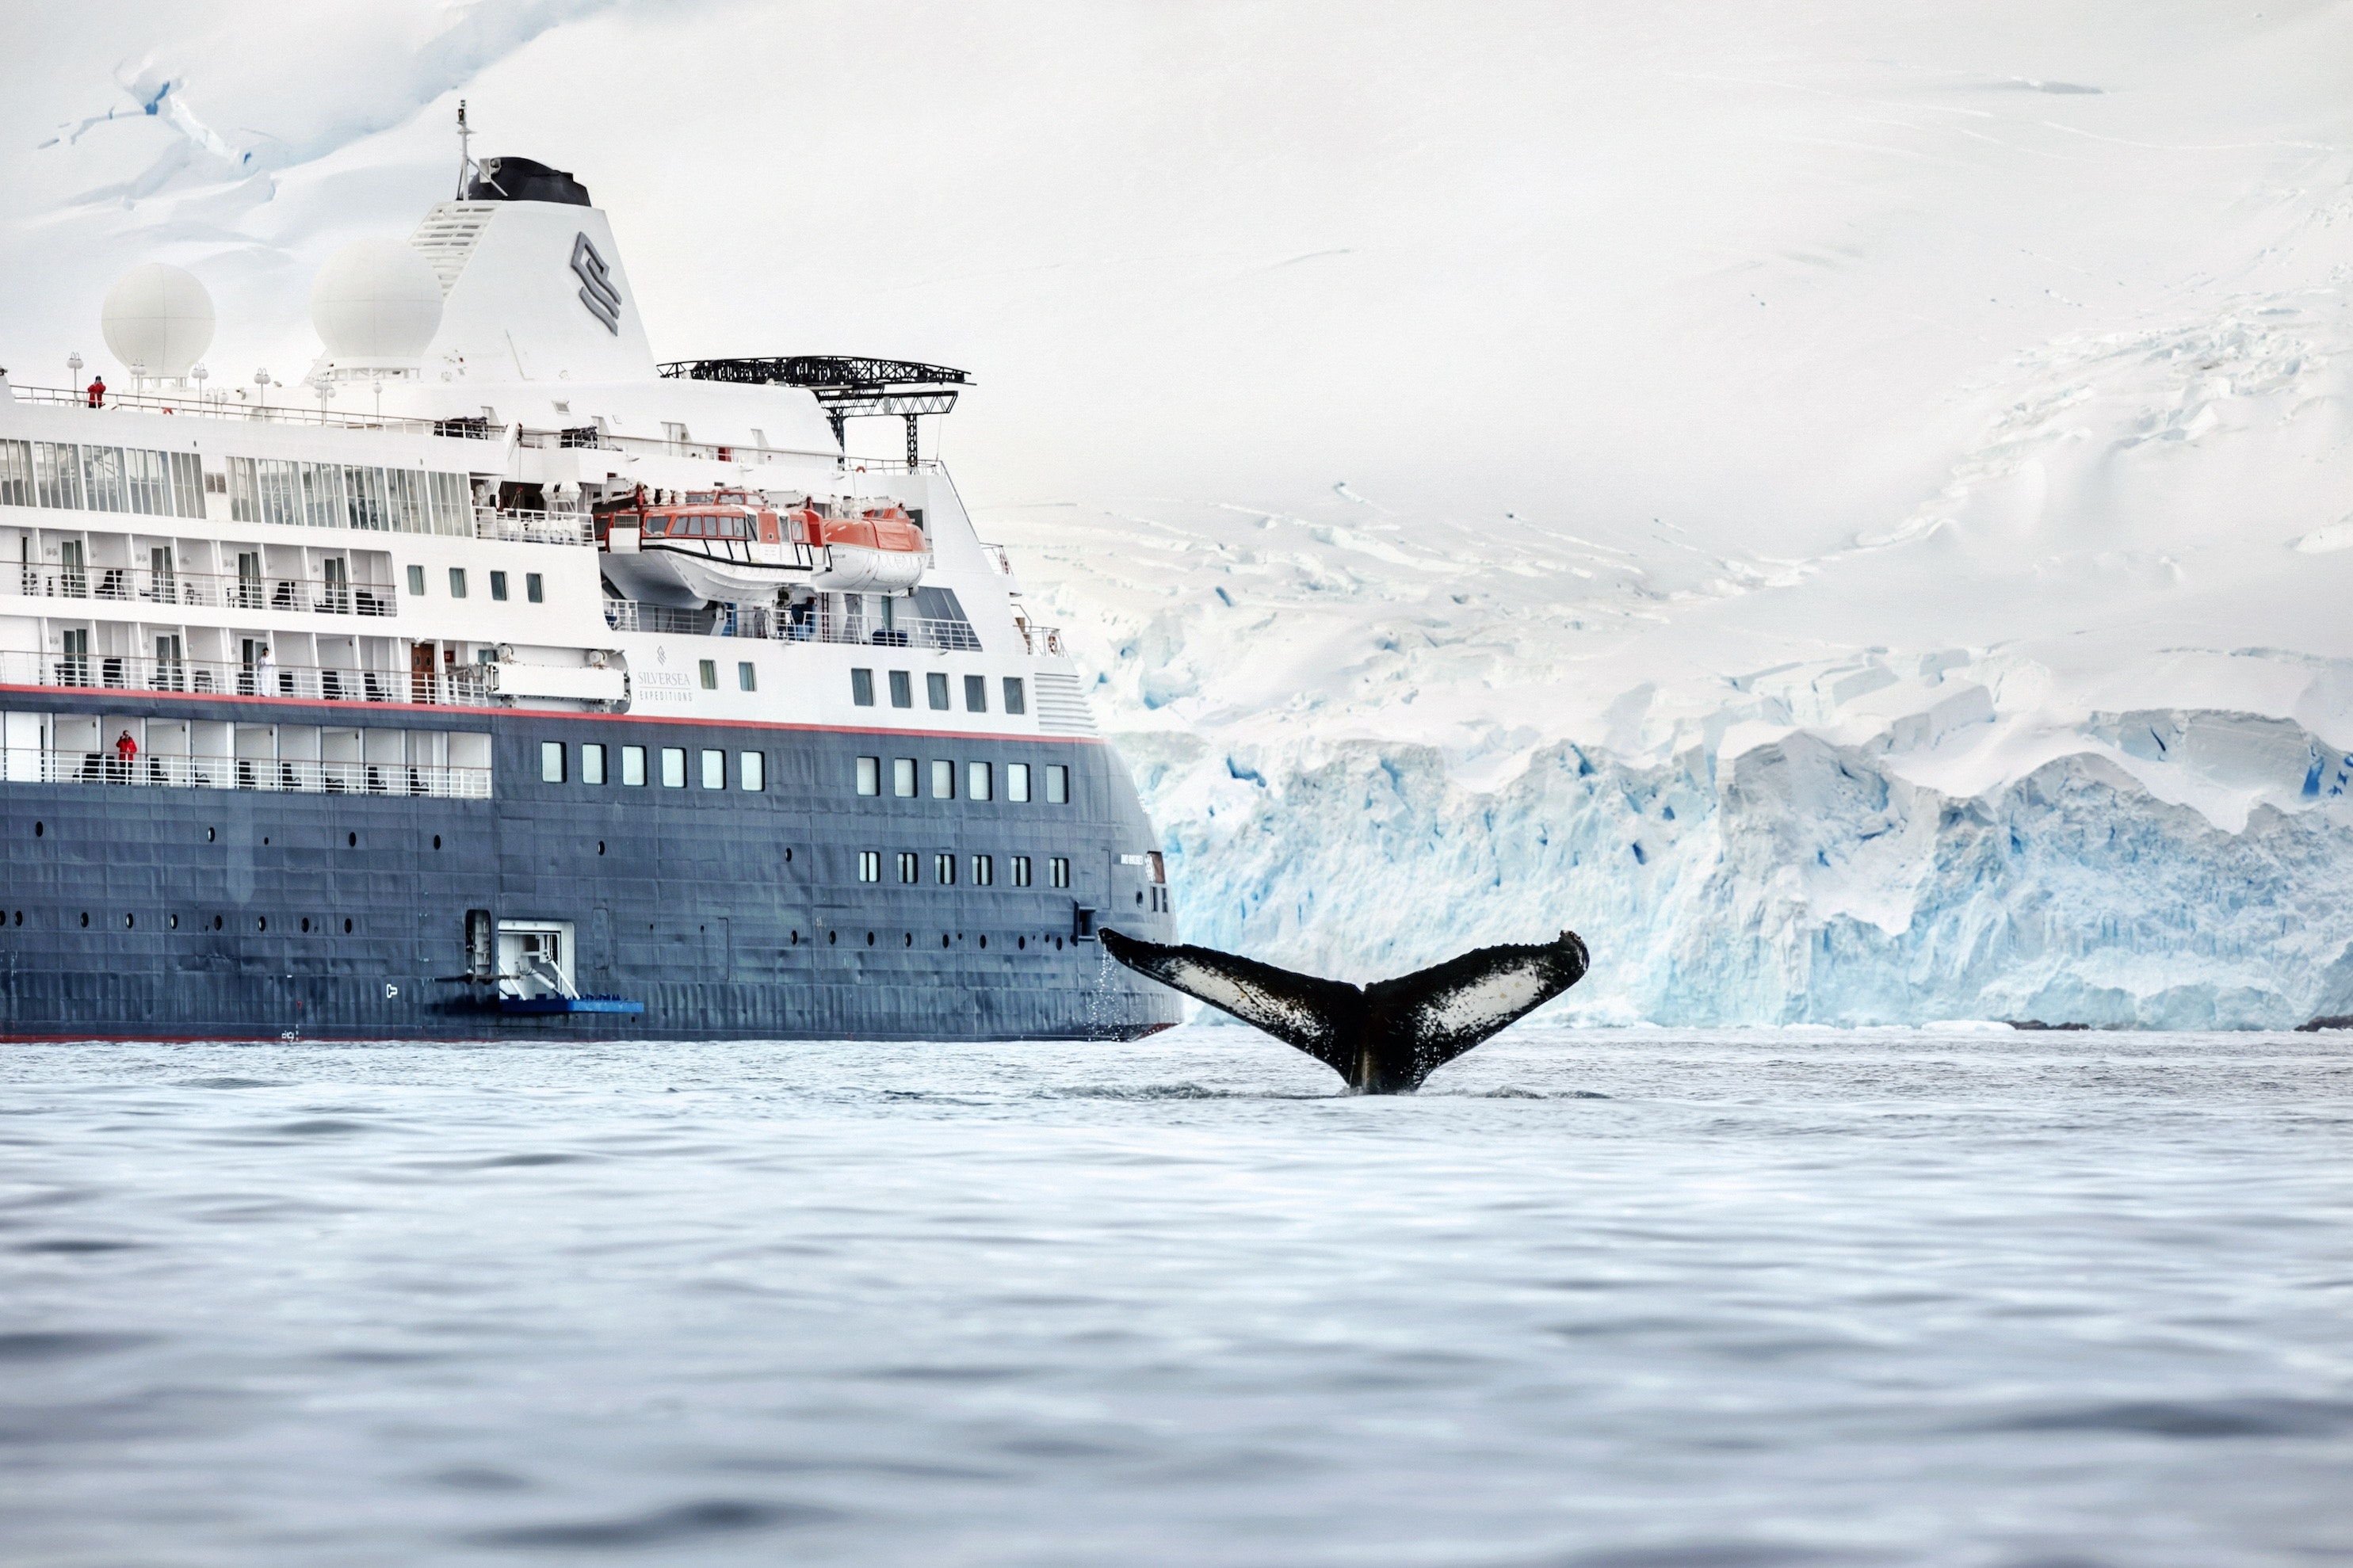 The Silver Cloud takes passengers to Antarctica in ultimate comfort.